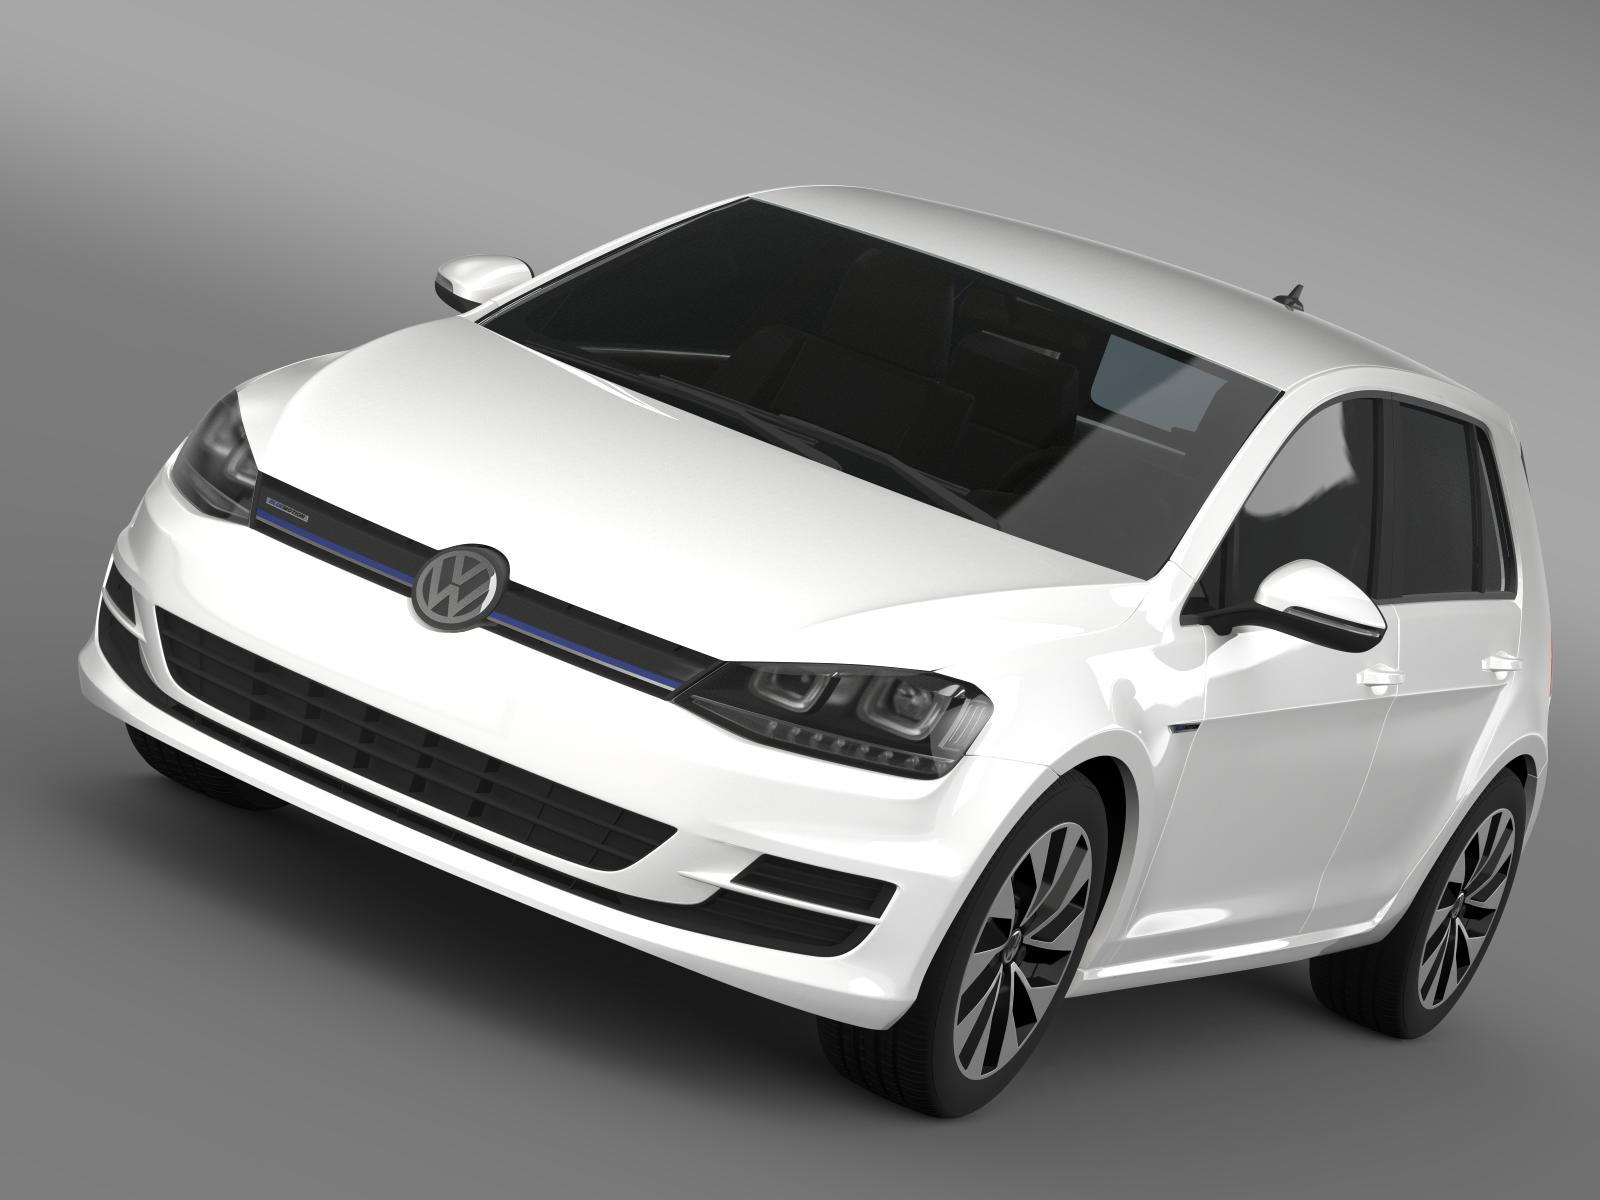 vw golf bluemotion koncept tip 5g 2012 3d model 3ds max fbx c4d lwo ma mb hrc xsi obj 165971